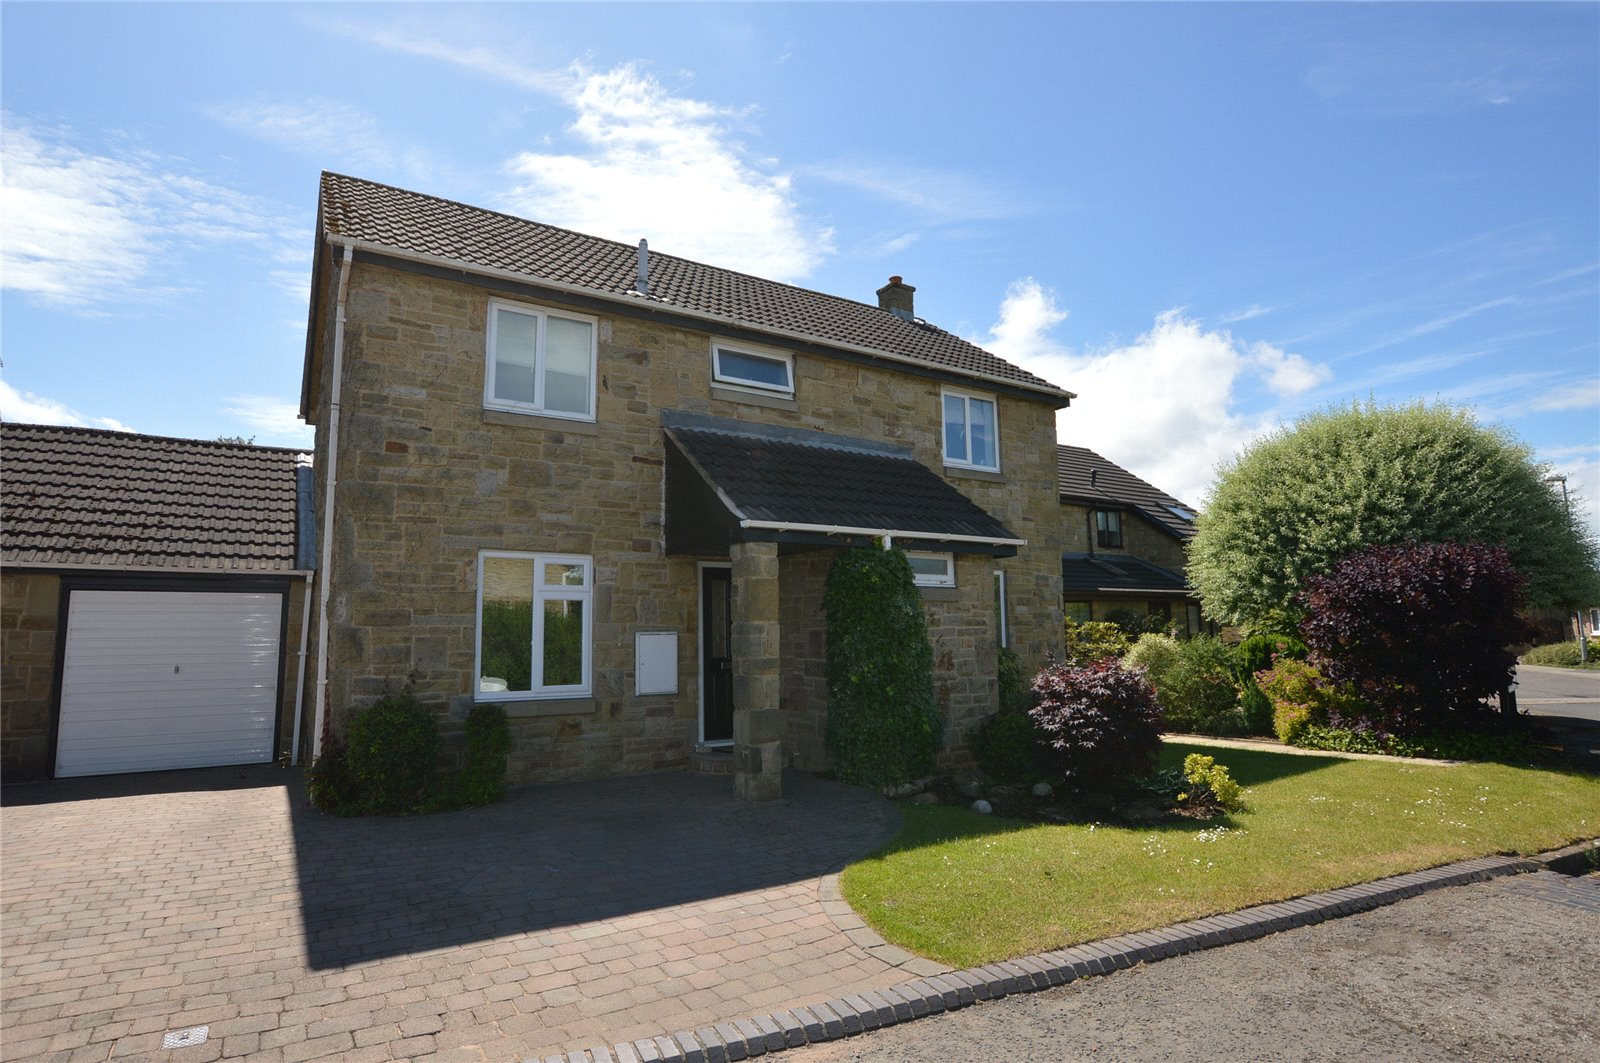 property for sale in Wetherby, exterior of family home